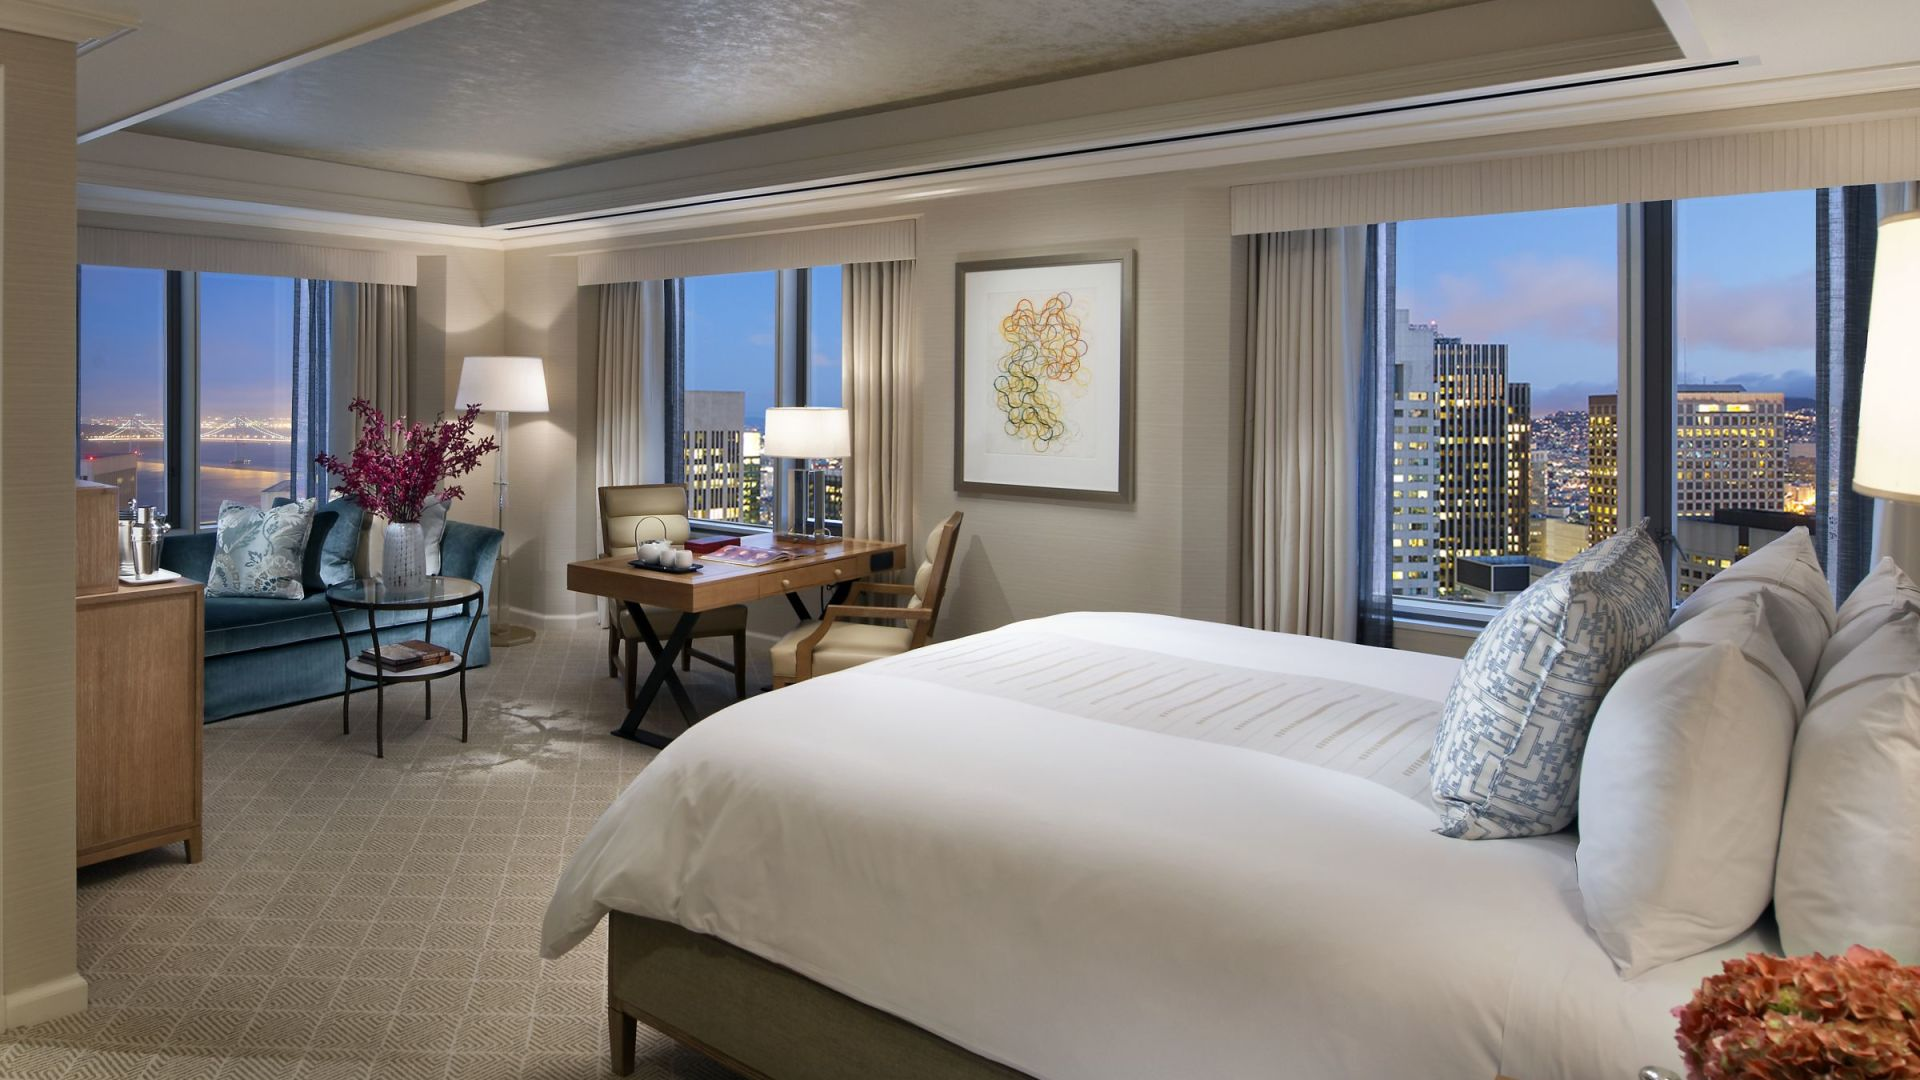 Luxury Bay Bridge King Room | Loews Regency San Francisco